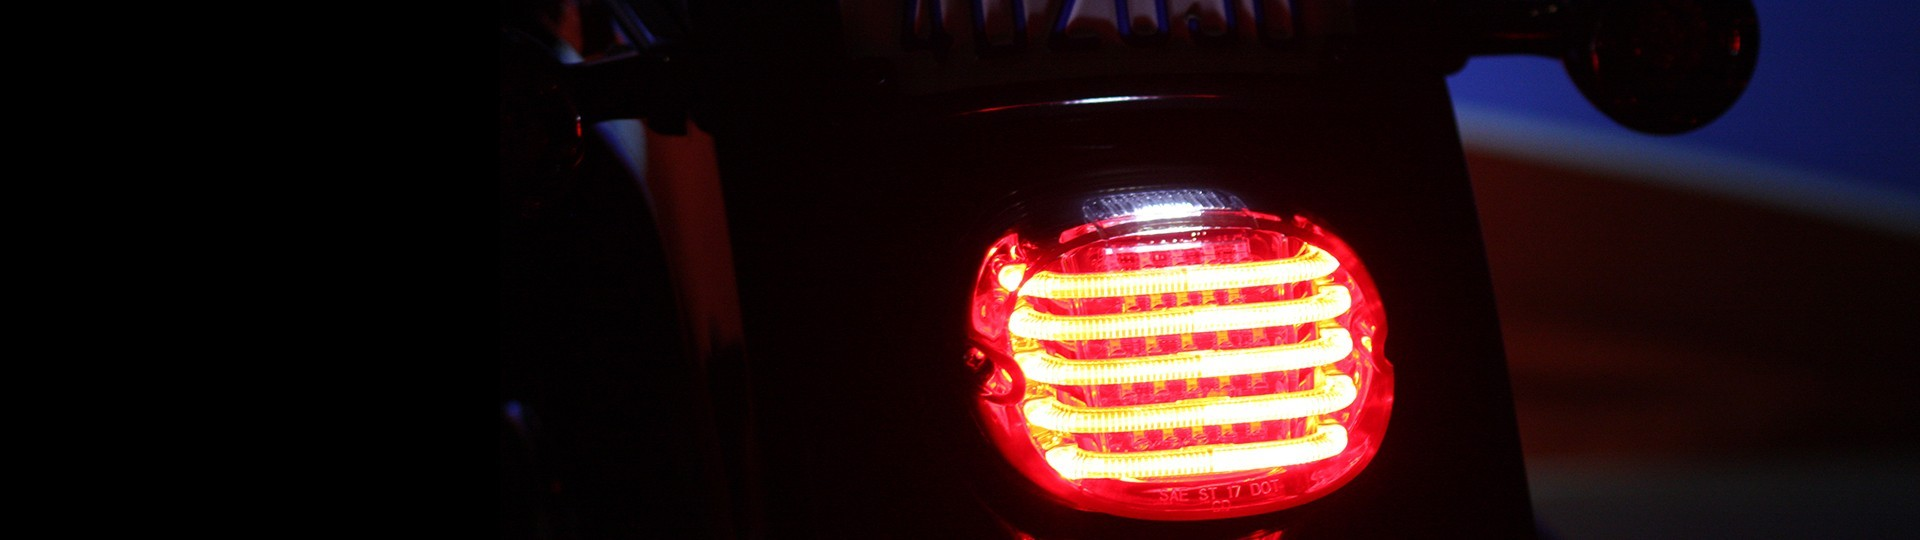 Motorcycle Led Lights By Custom Dynamics Ke Light Turn Signal Wiring Diagram Probeam Taillights